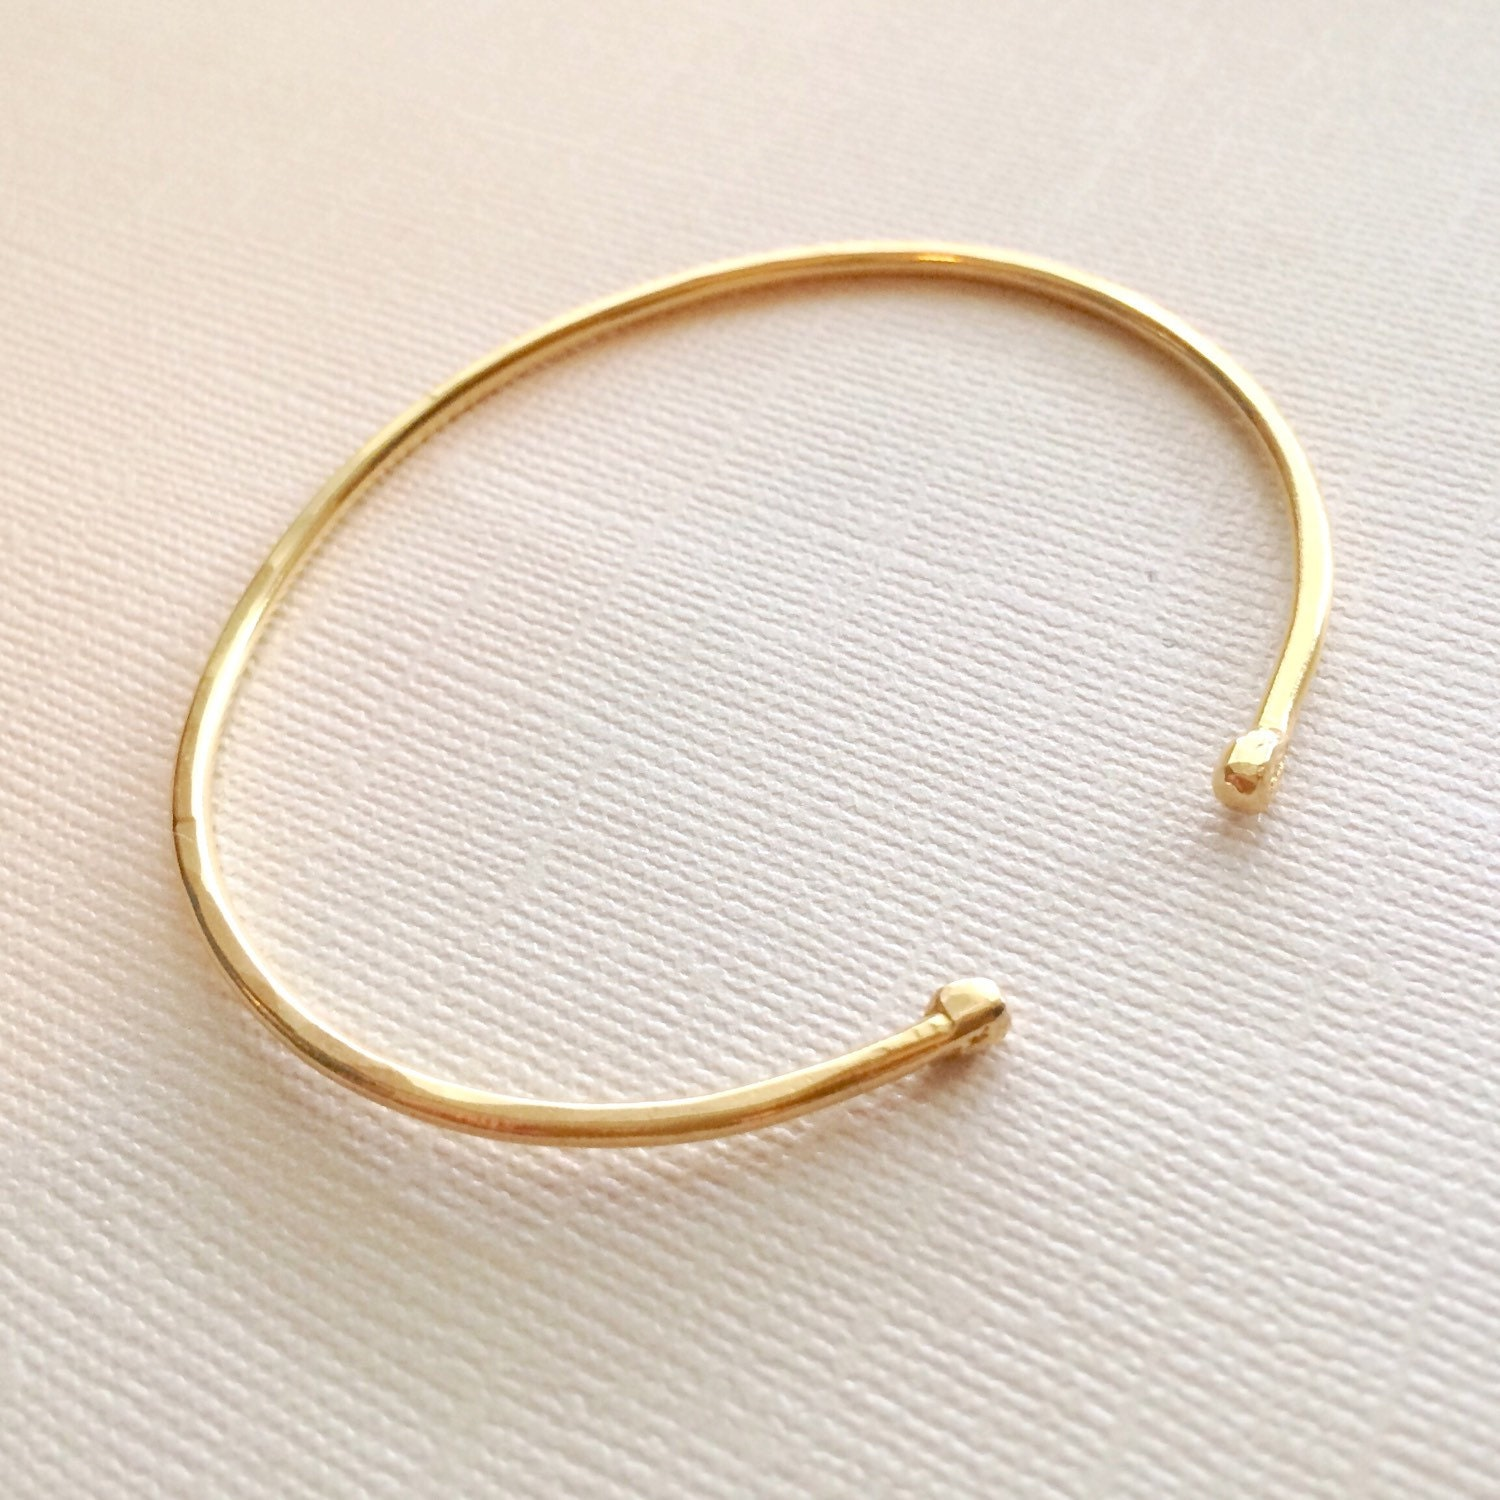 Thin Gold Bangle Bracelets - The Best Bracelet 2017